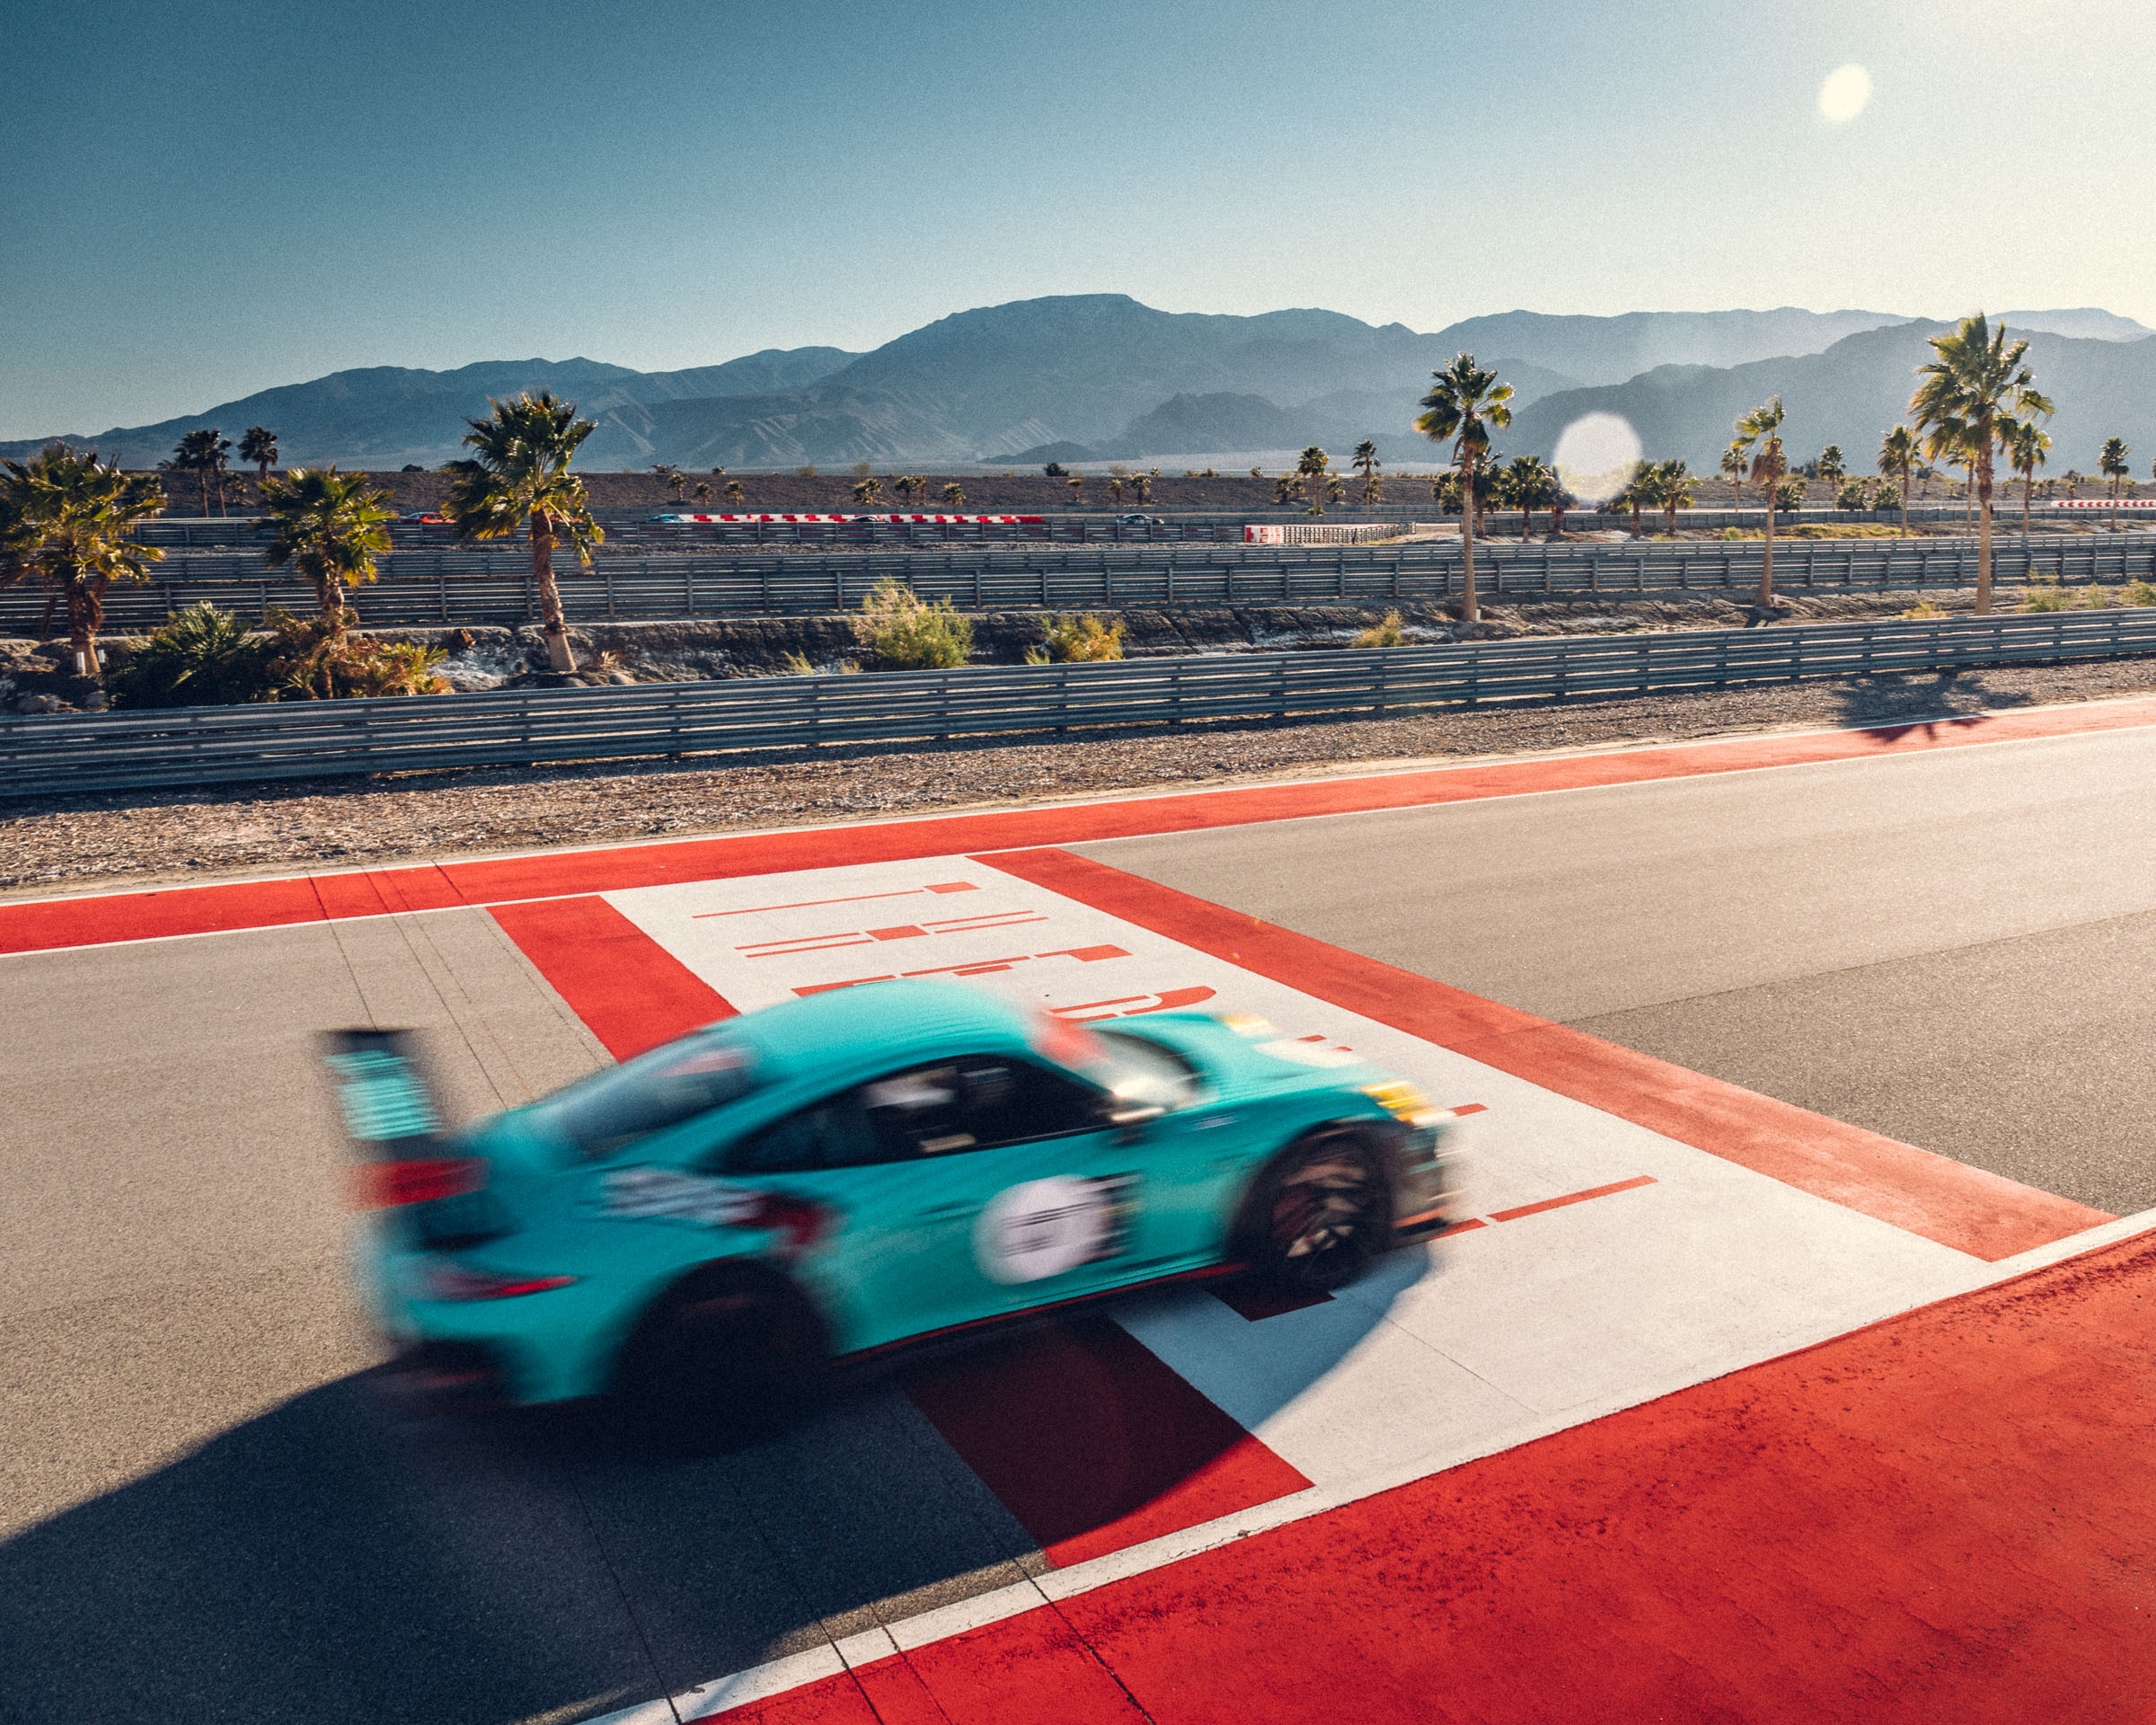 Porsche crossing the finish line at The Thermal Club Photo by Mo Satarzadeh